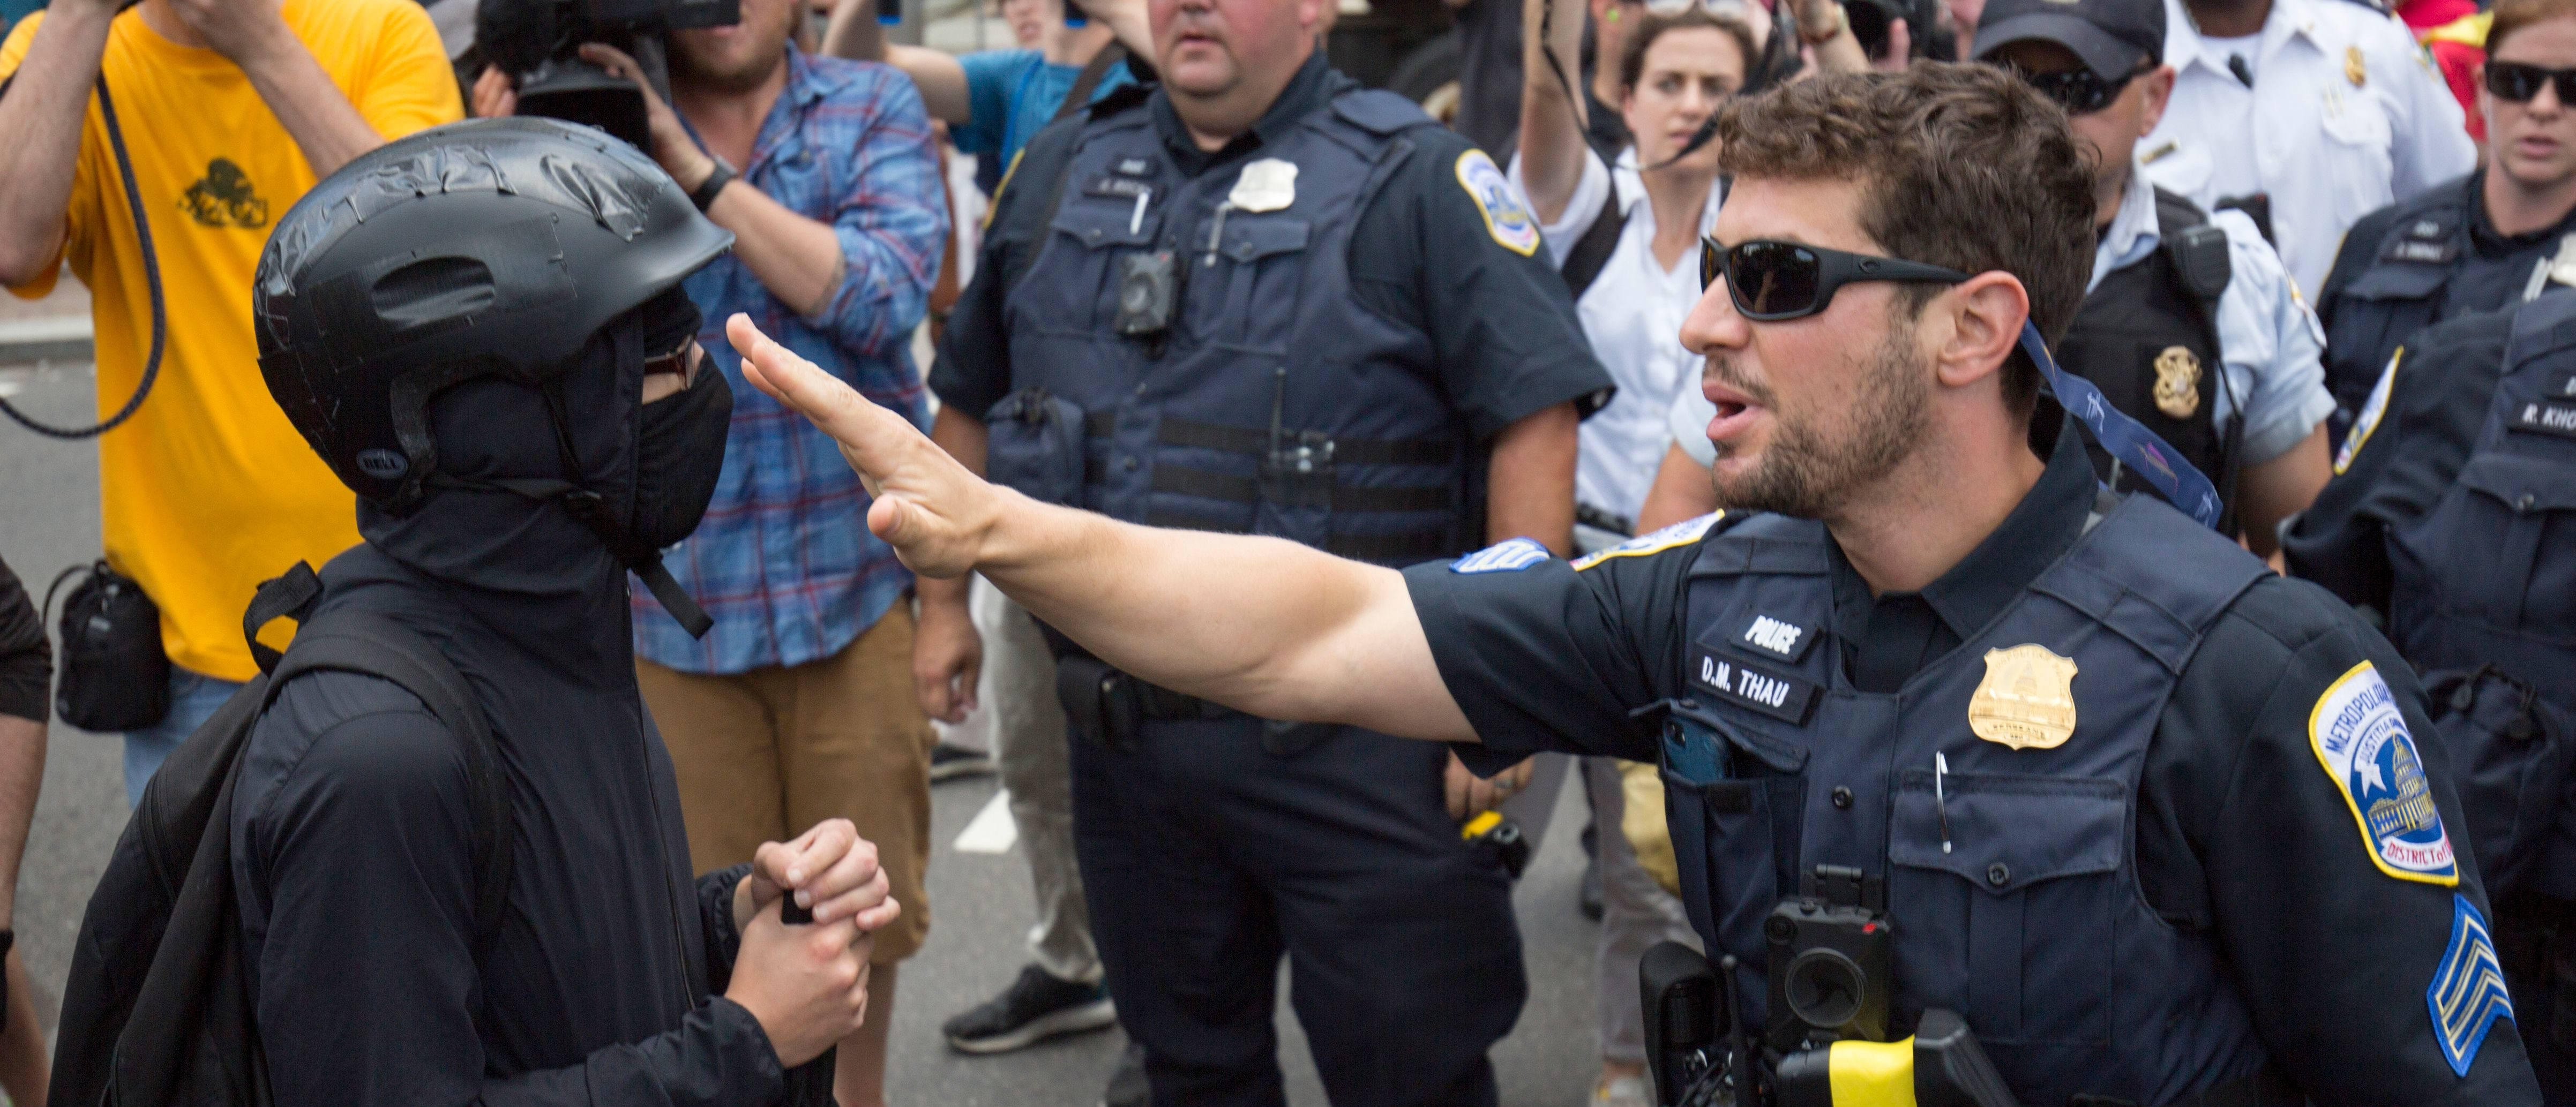 """A member of an anti-fascist or Antifa group (L) argues with police as they try to reach the Alt-Right """"Demand Free Speech"""" rally in Washington, DC, July 6, 2019. (Photo by Alastair Pike / AFP) (Photo credit should read ALASTAIR PIKE/AFP/Getty Images)"""